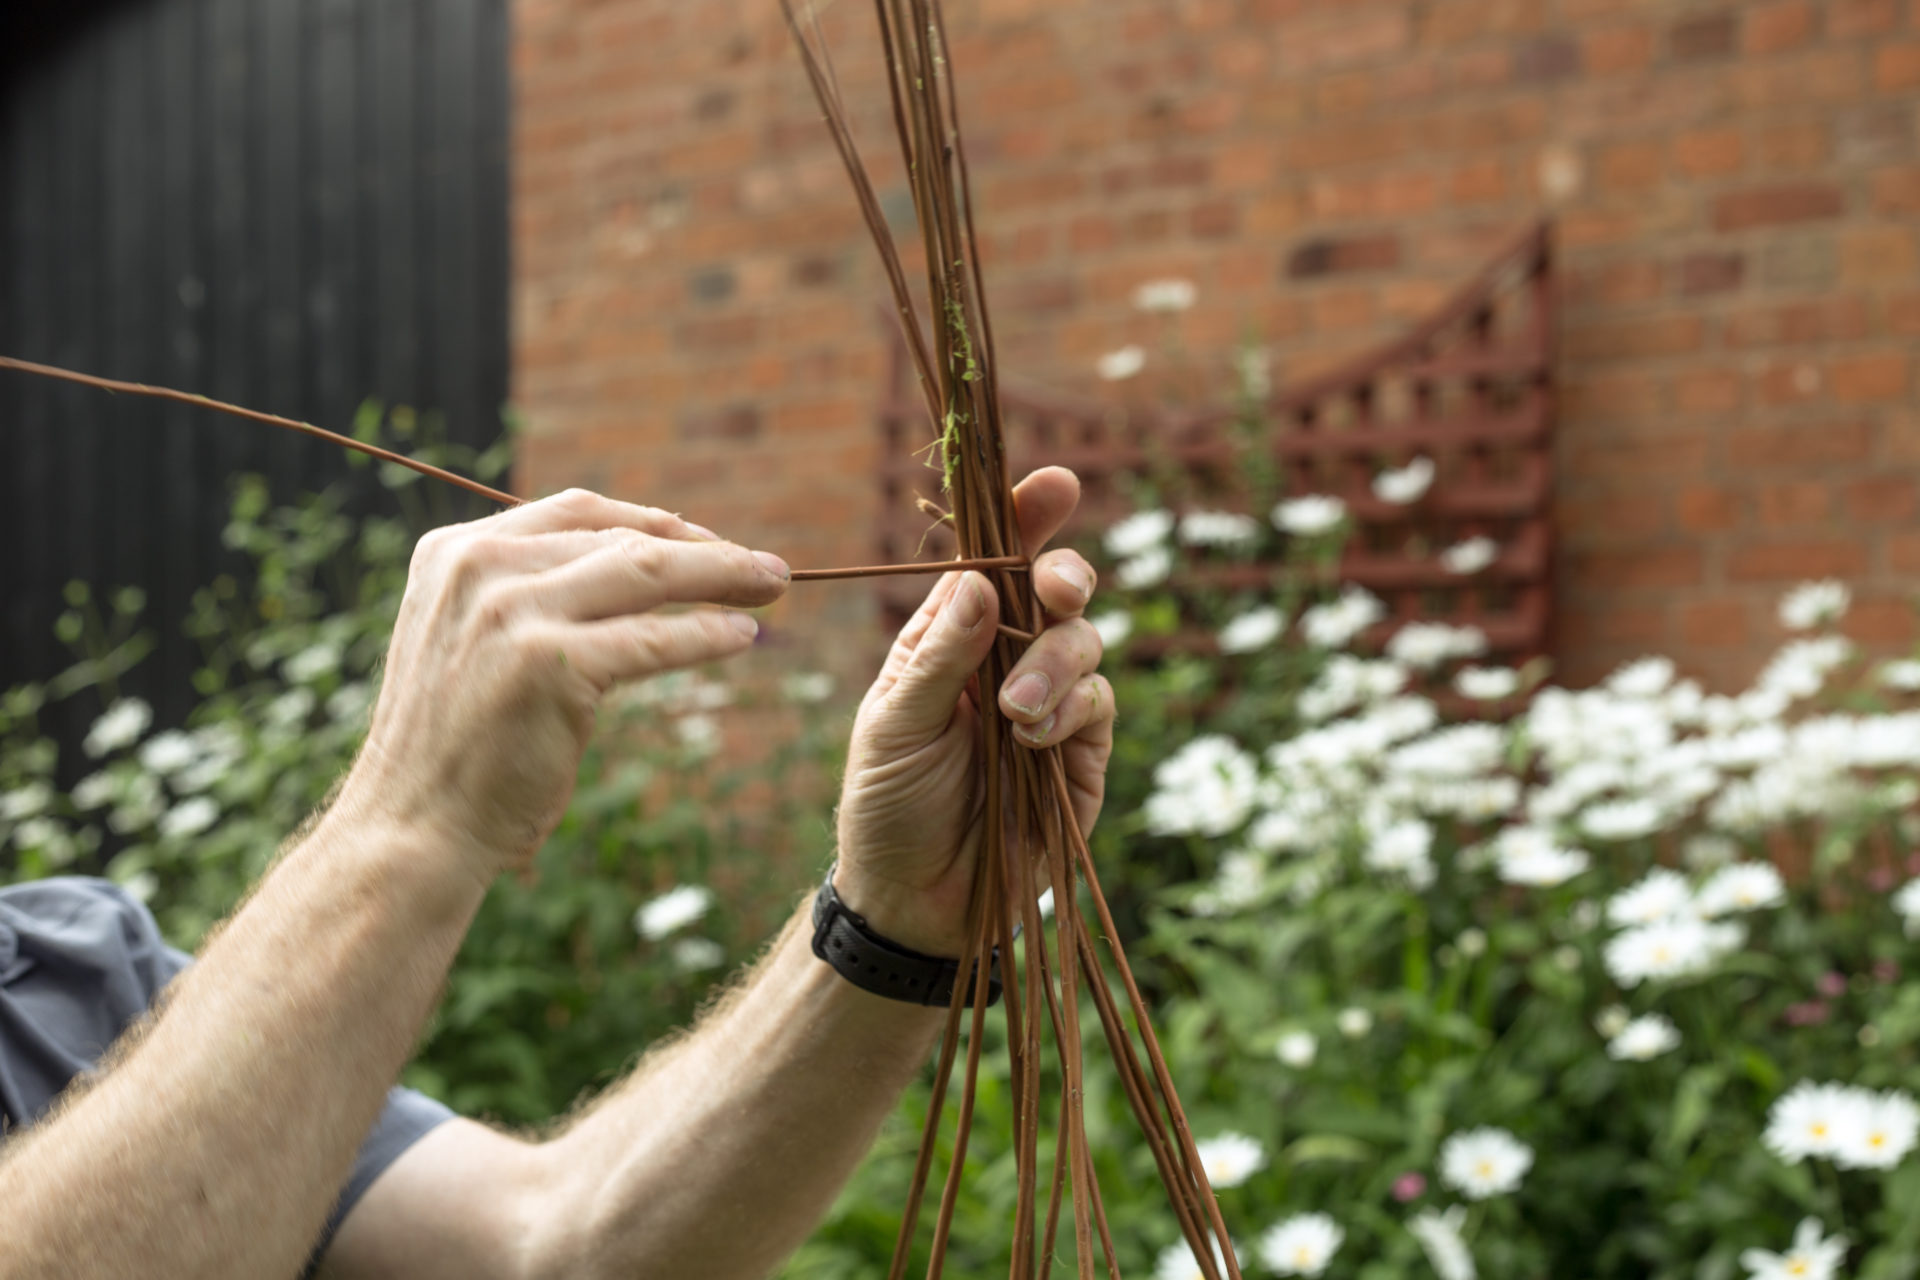 Garden Willow Weaving March 2020 – Morning